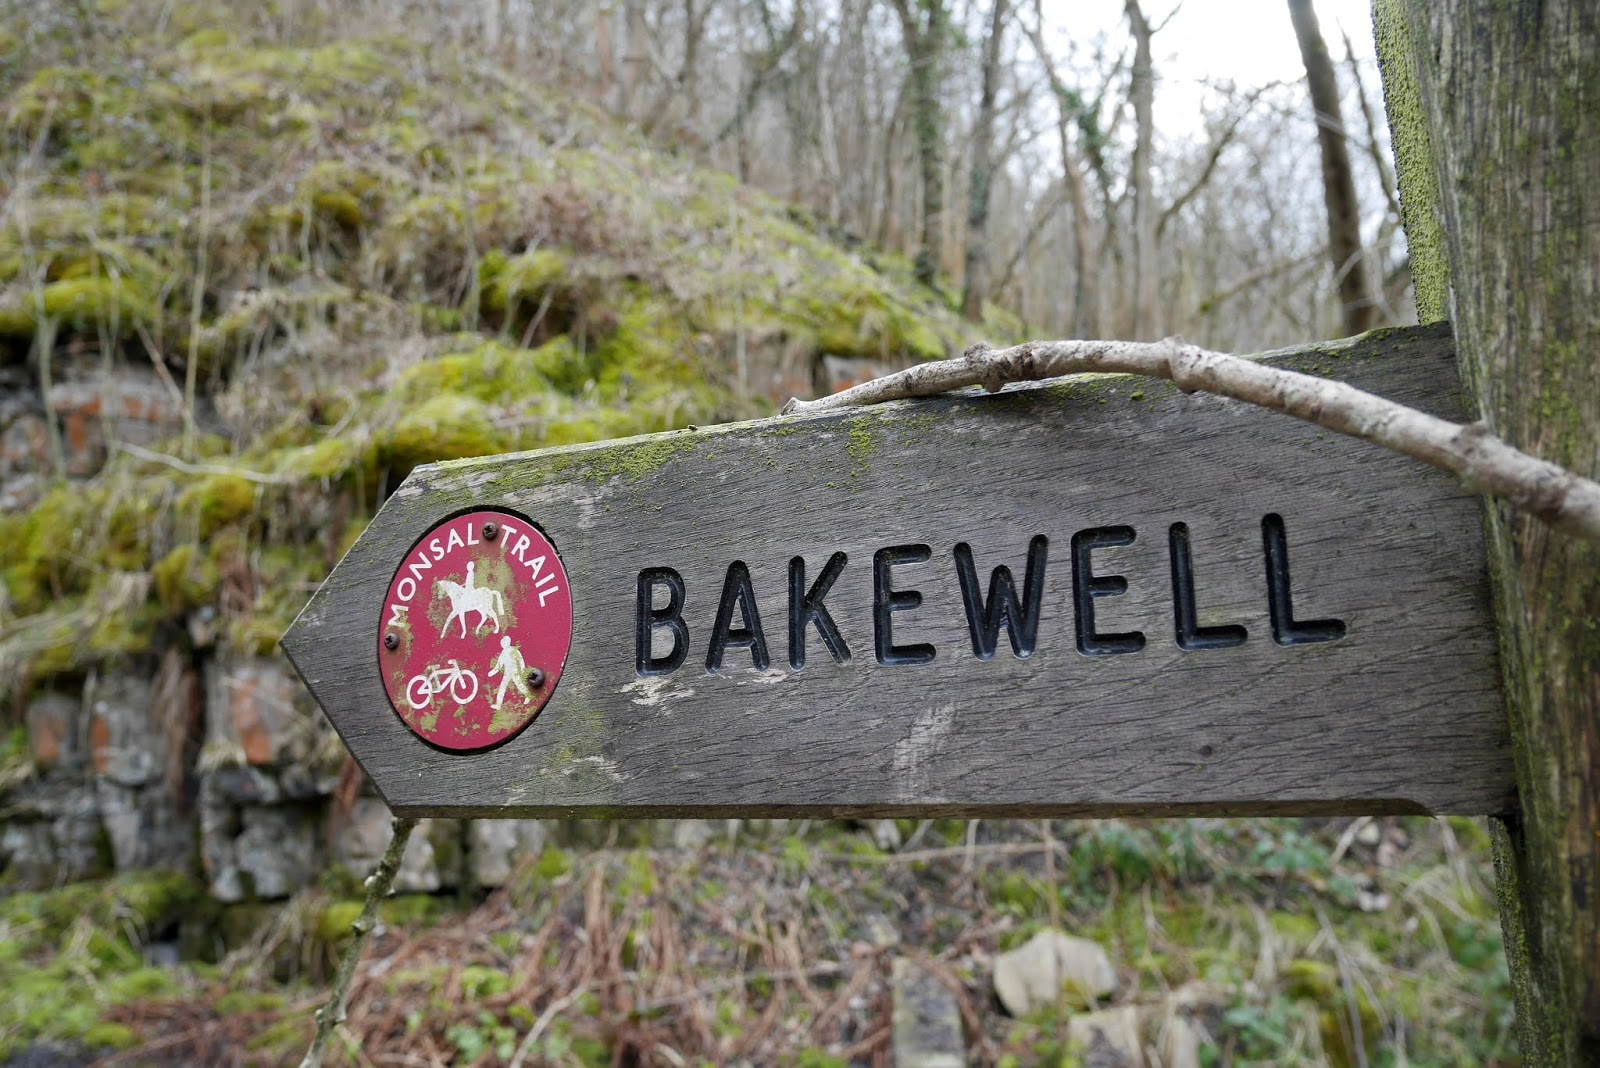 Bakewell footpath sign on the Monsal Trail, Peak District National Park